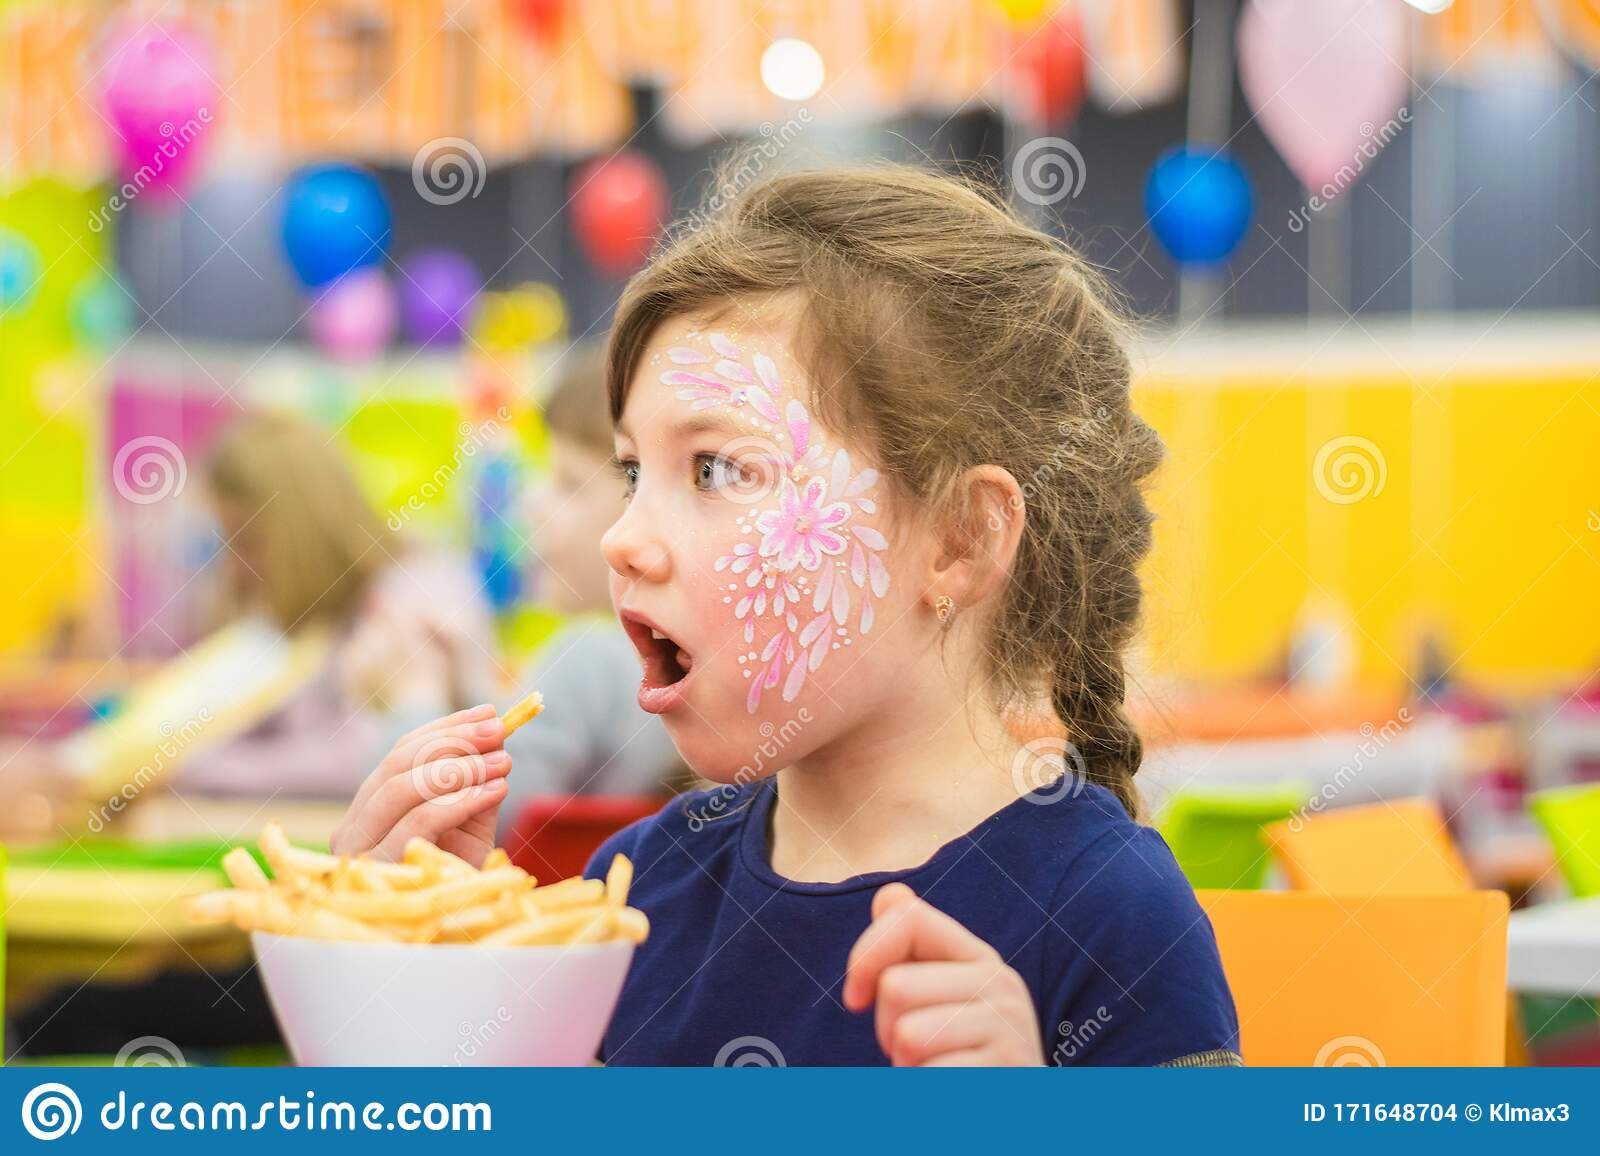 Baby Opening Her Mouth Eats Food From A Large Plate. A ...